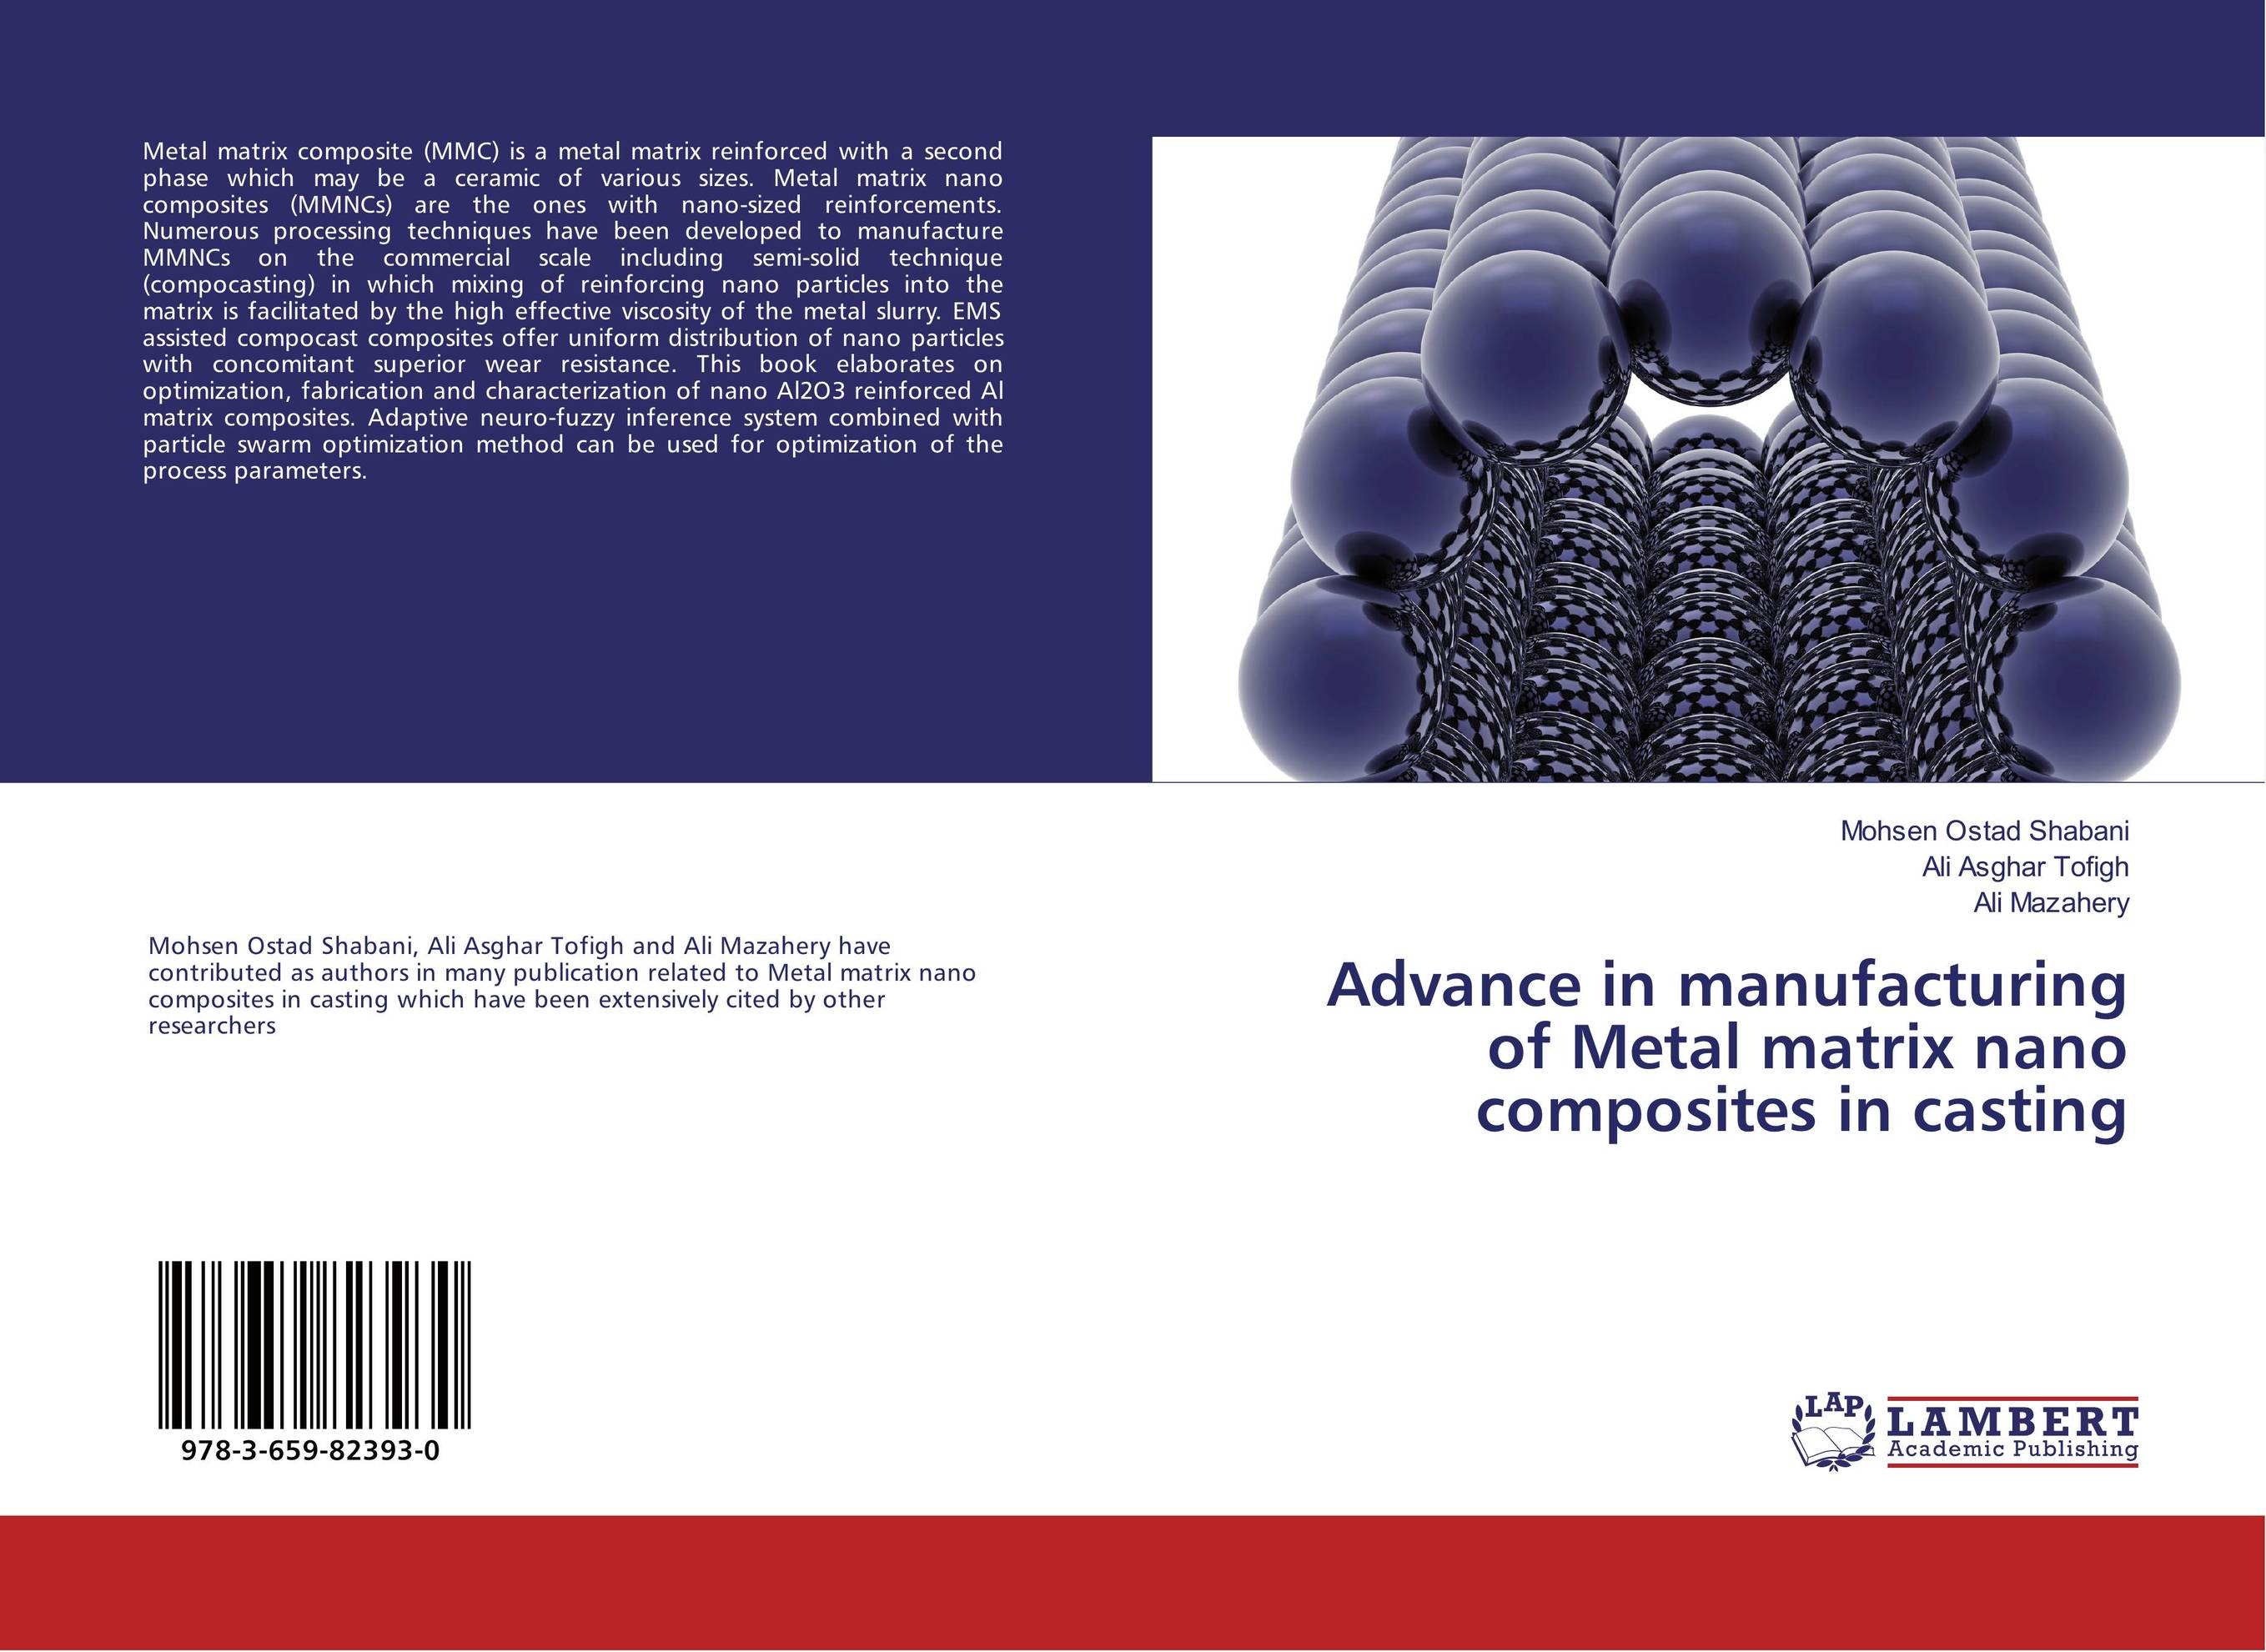 Advance in manufacturing of Metal matrix nano composites in casting